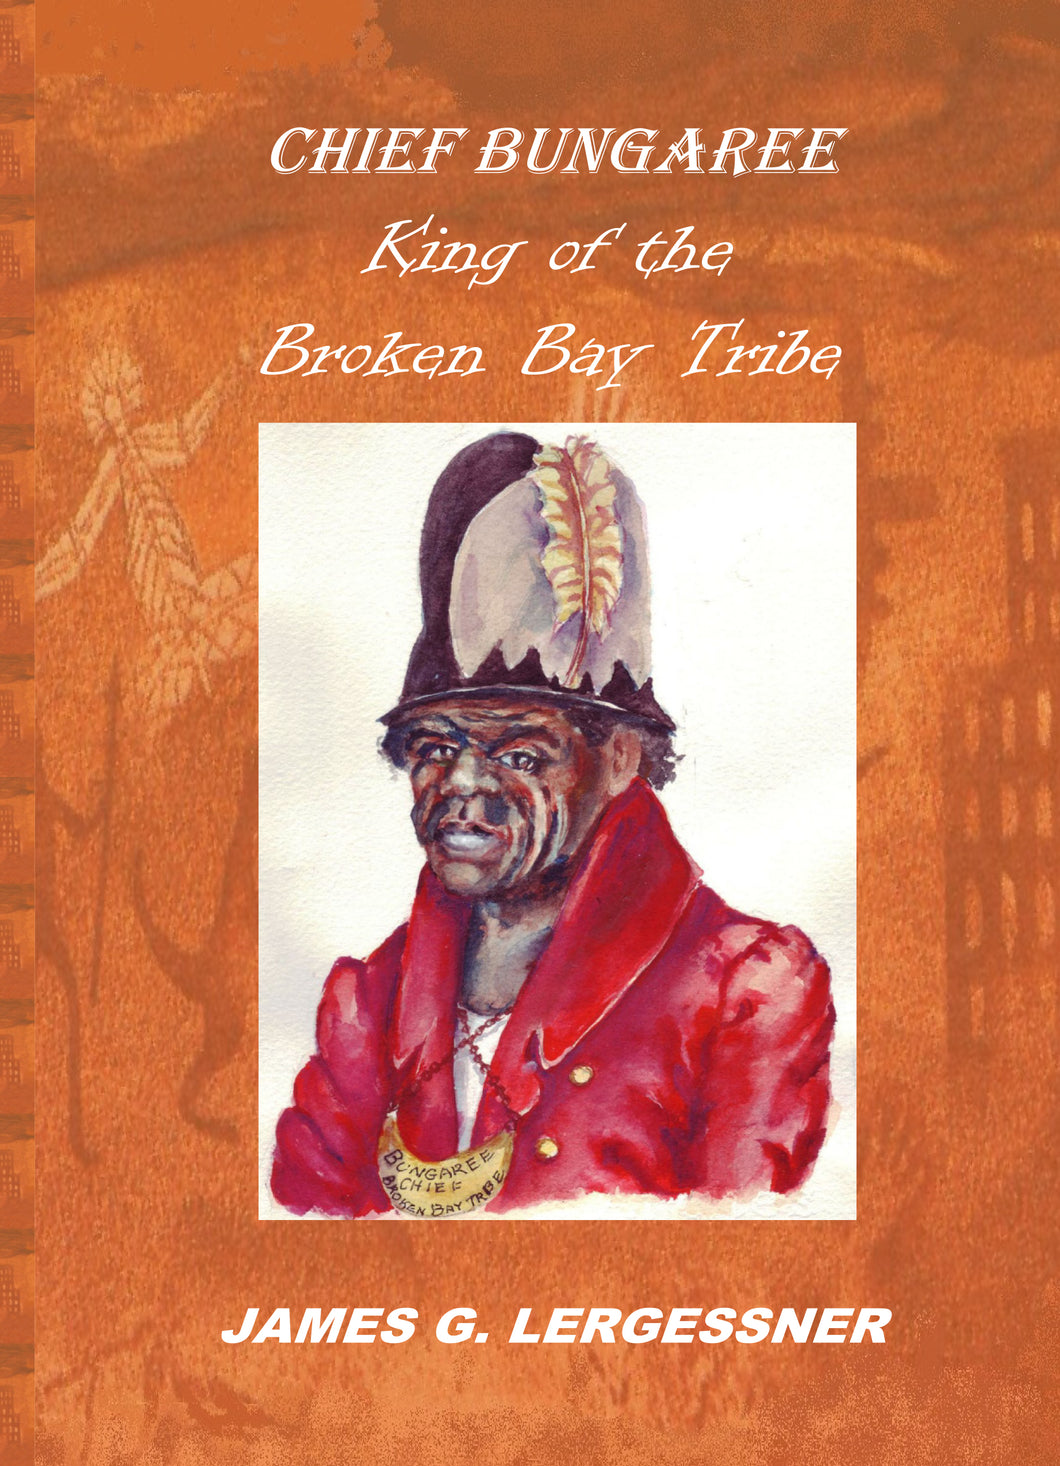 Chief Bungaree: King of the Broken Bay Tribe